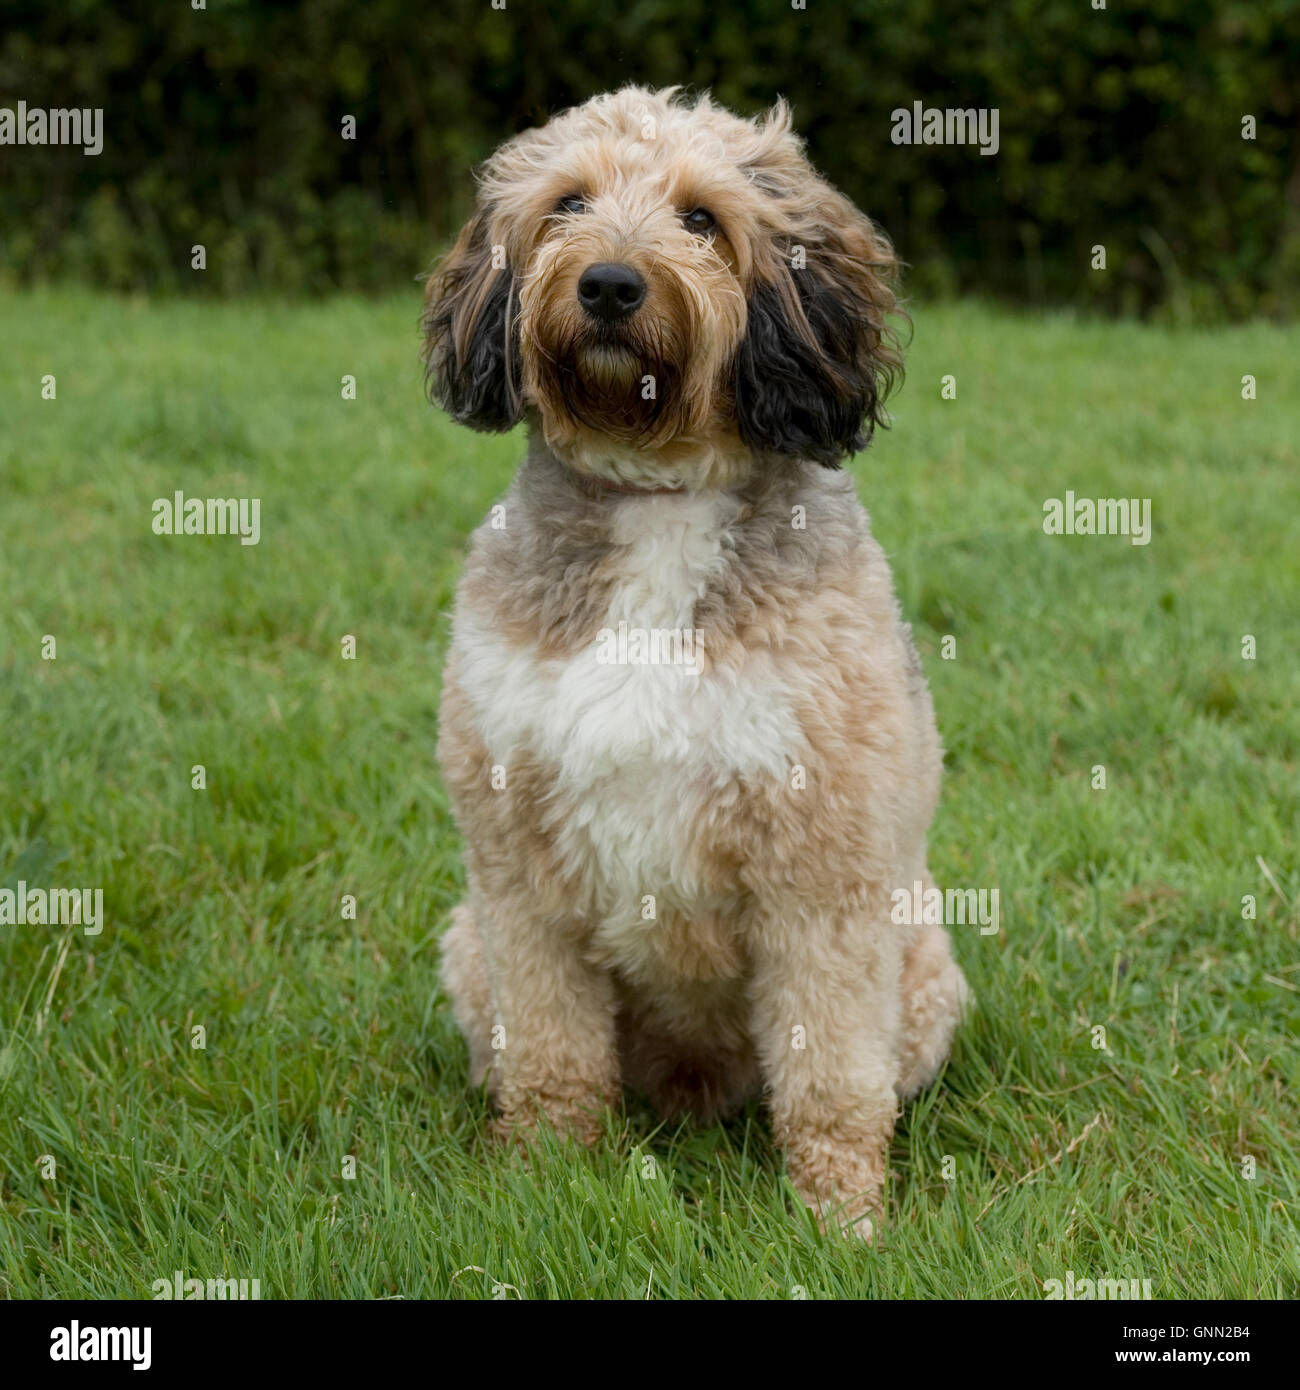 cockapoo - Stock Image